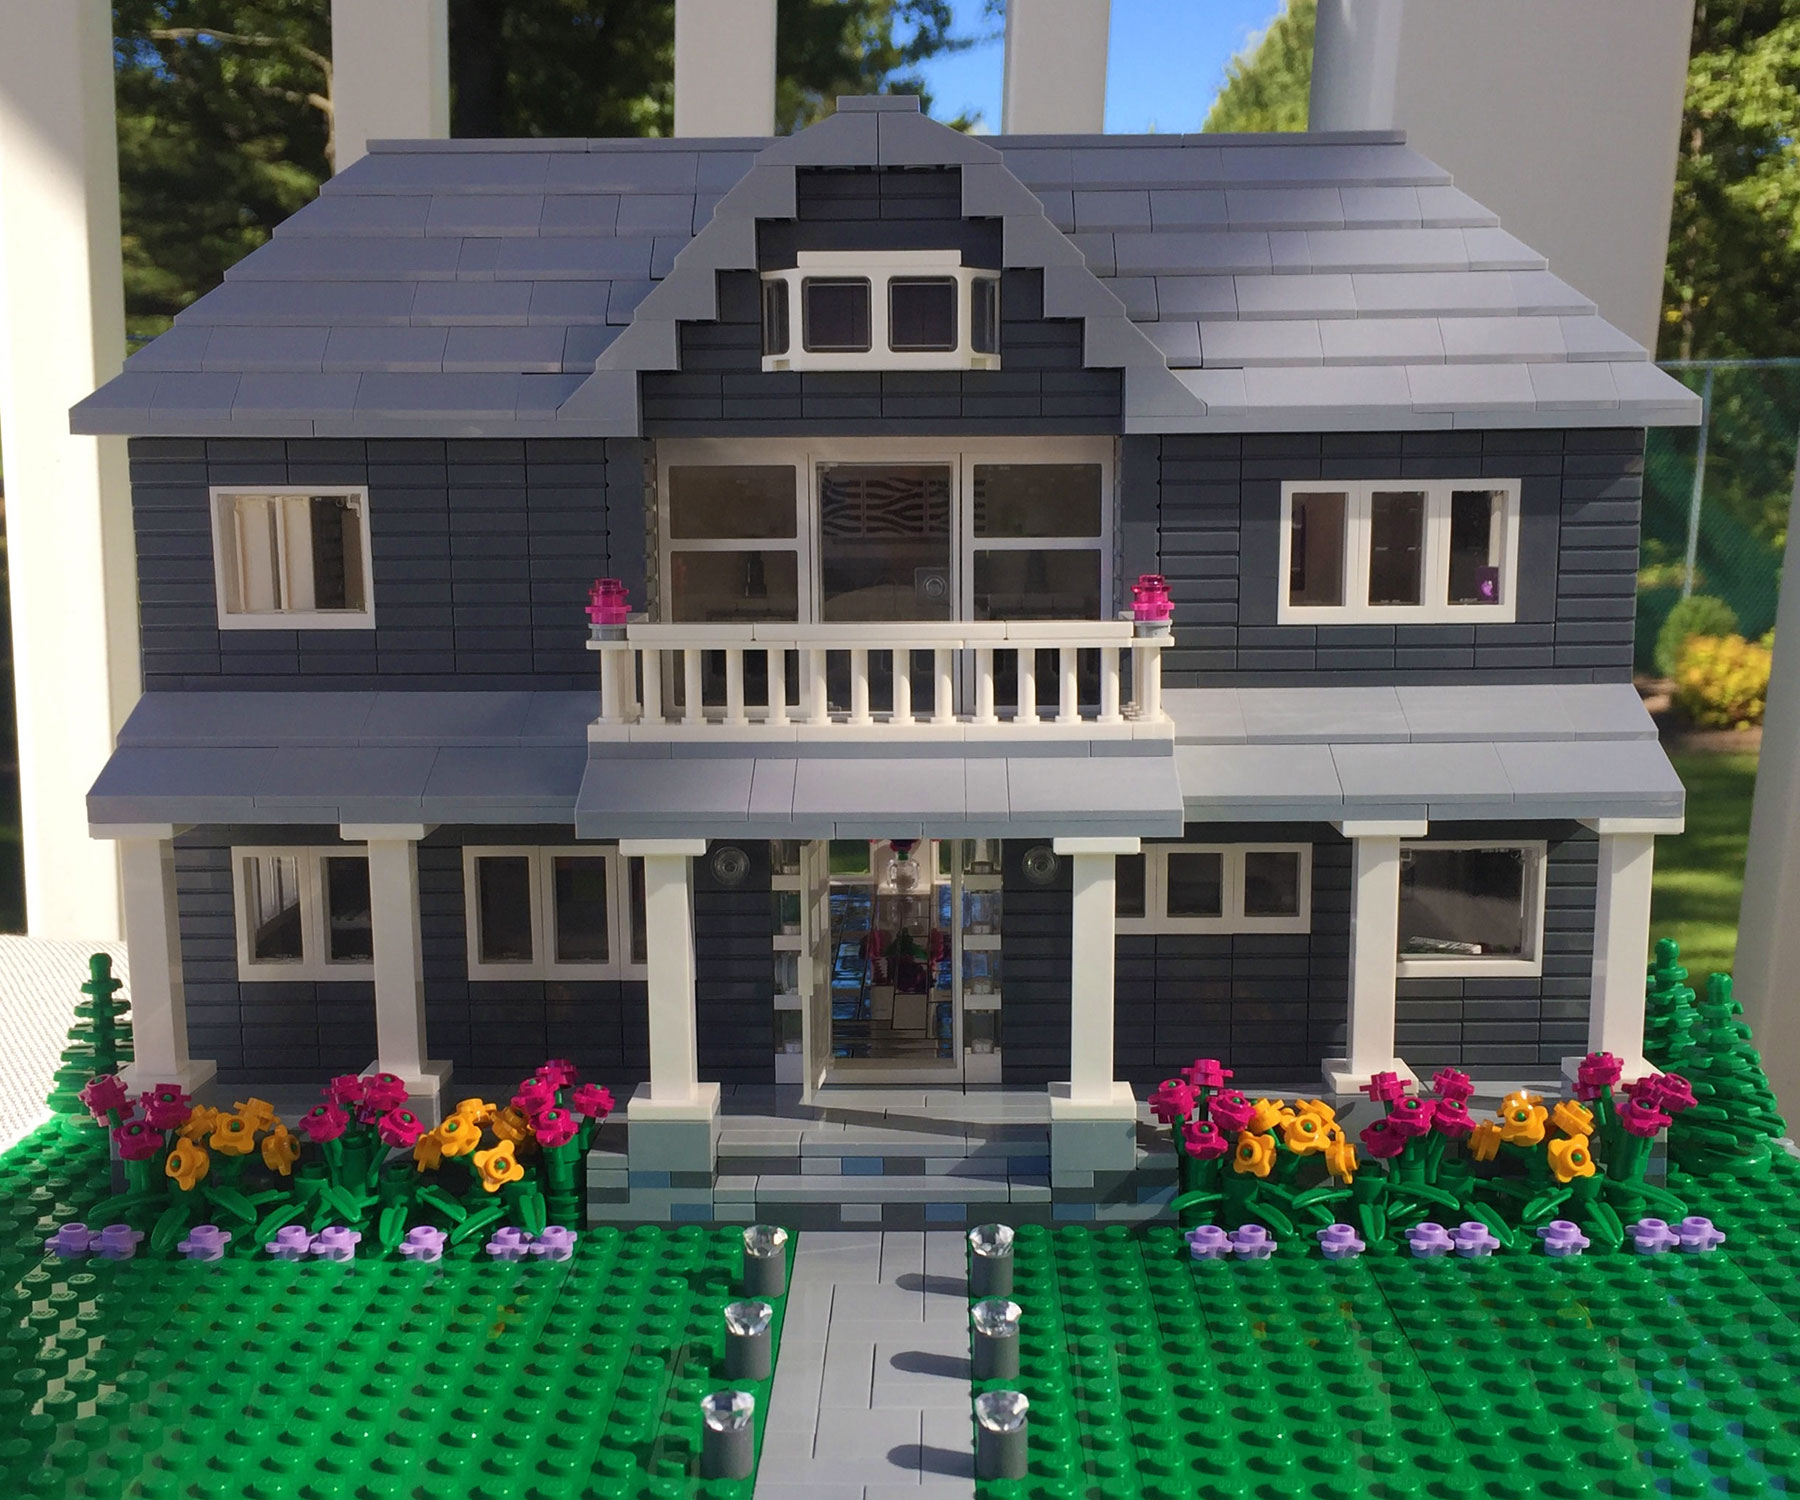 Custom LEGO Model Of Your Home